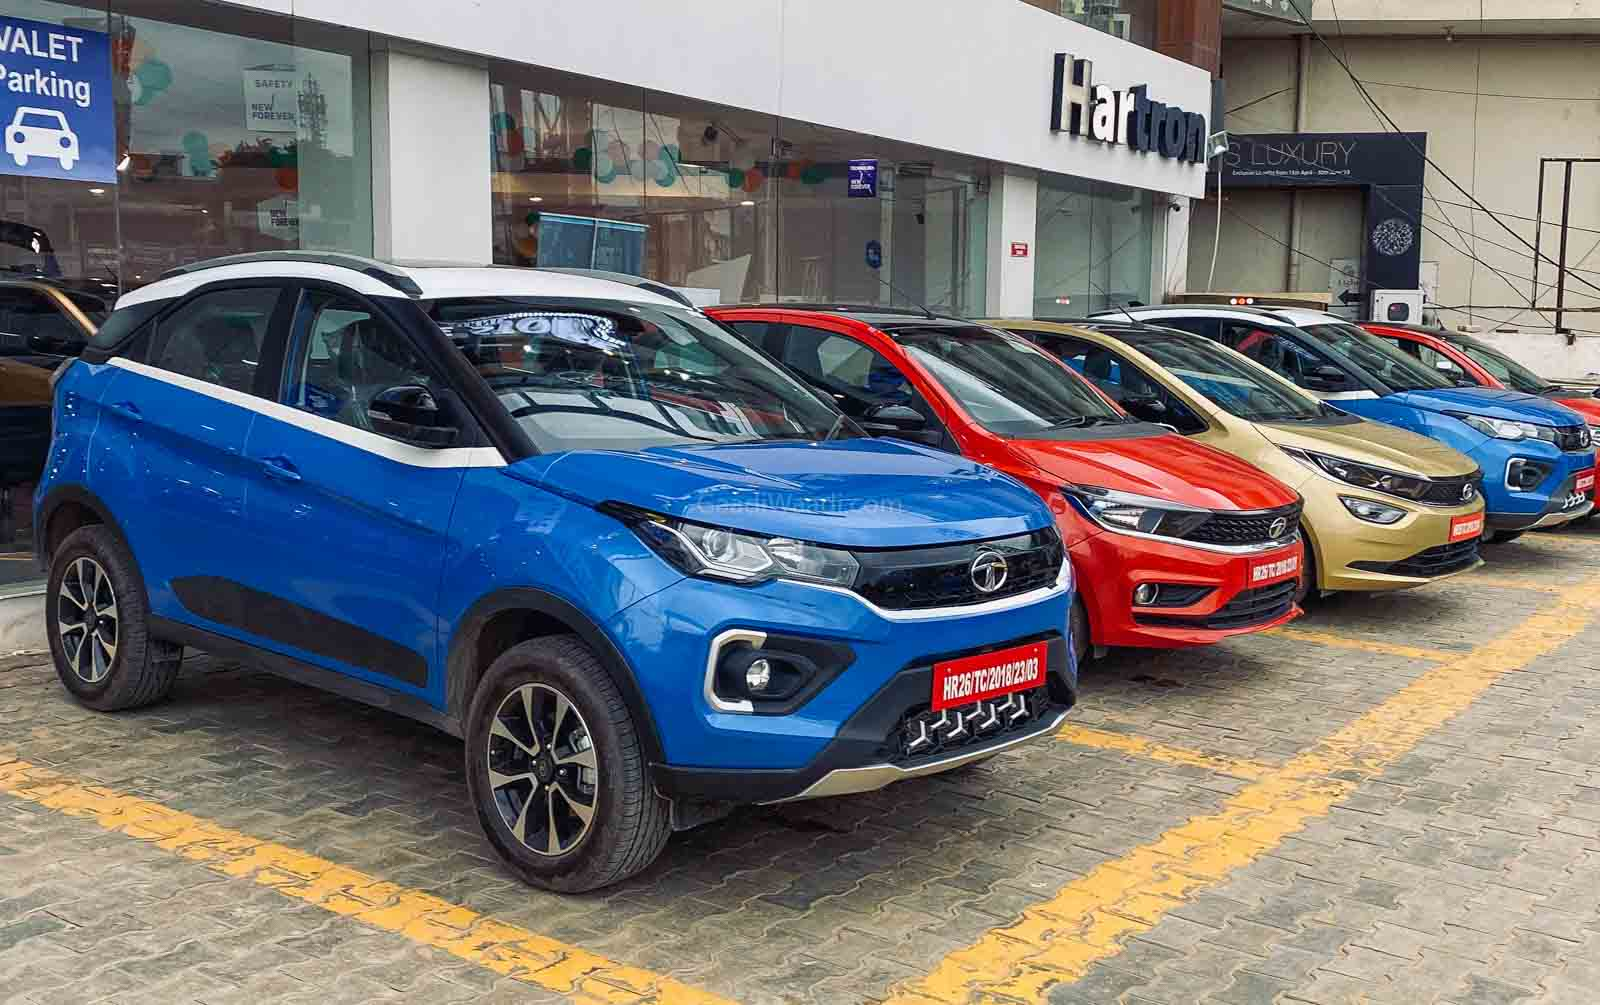 Tata Motors' passenger vehicle segment registered a growth of 25% in July as compared to June.